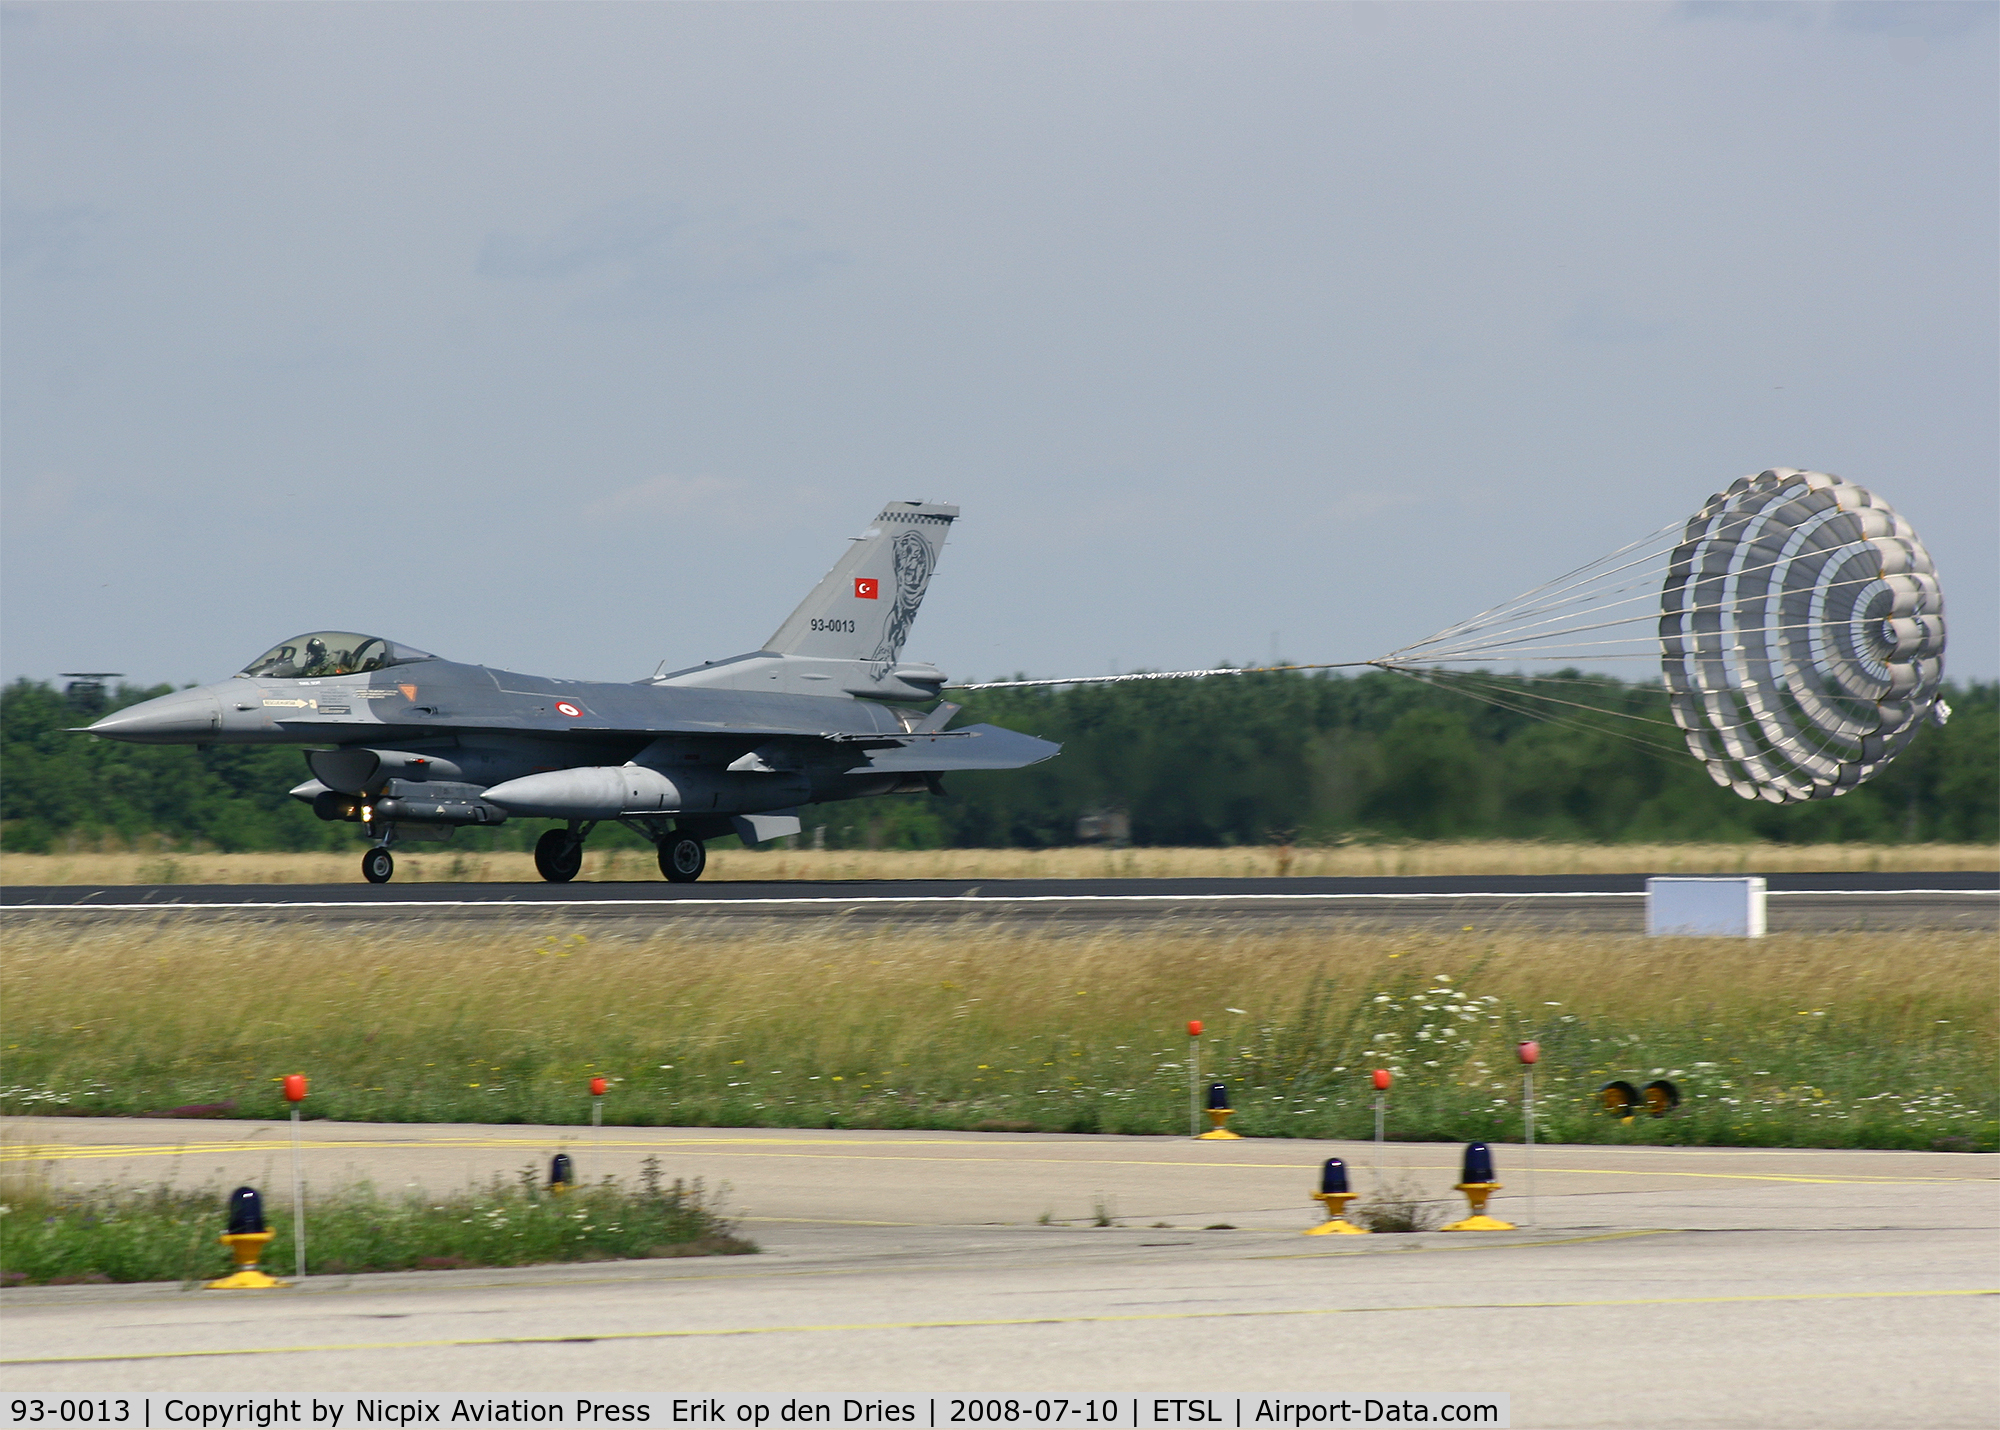 93-0013, Lockheed F-16C Fighting Falcon C/N 4R-135, Always nice to see is a dragchute landing! Turkish AF F-16C 93-0013 at Lechfeld AB, Germany.